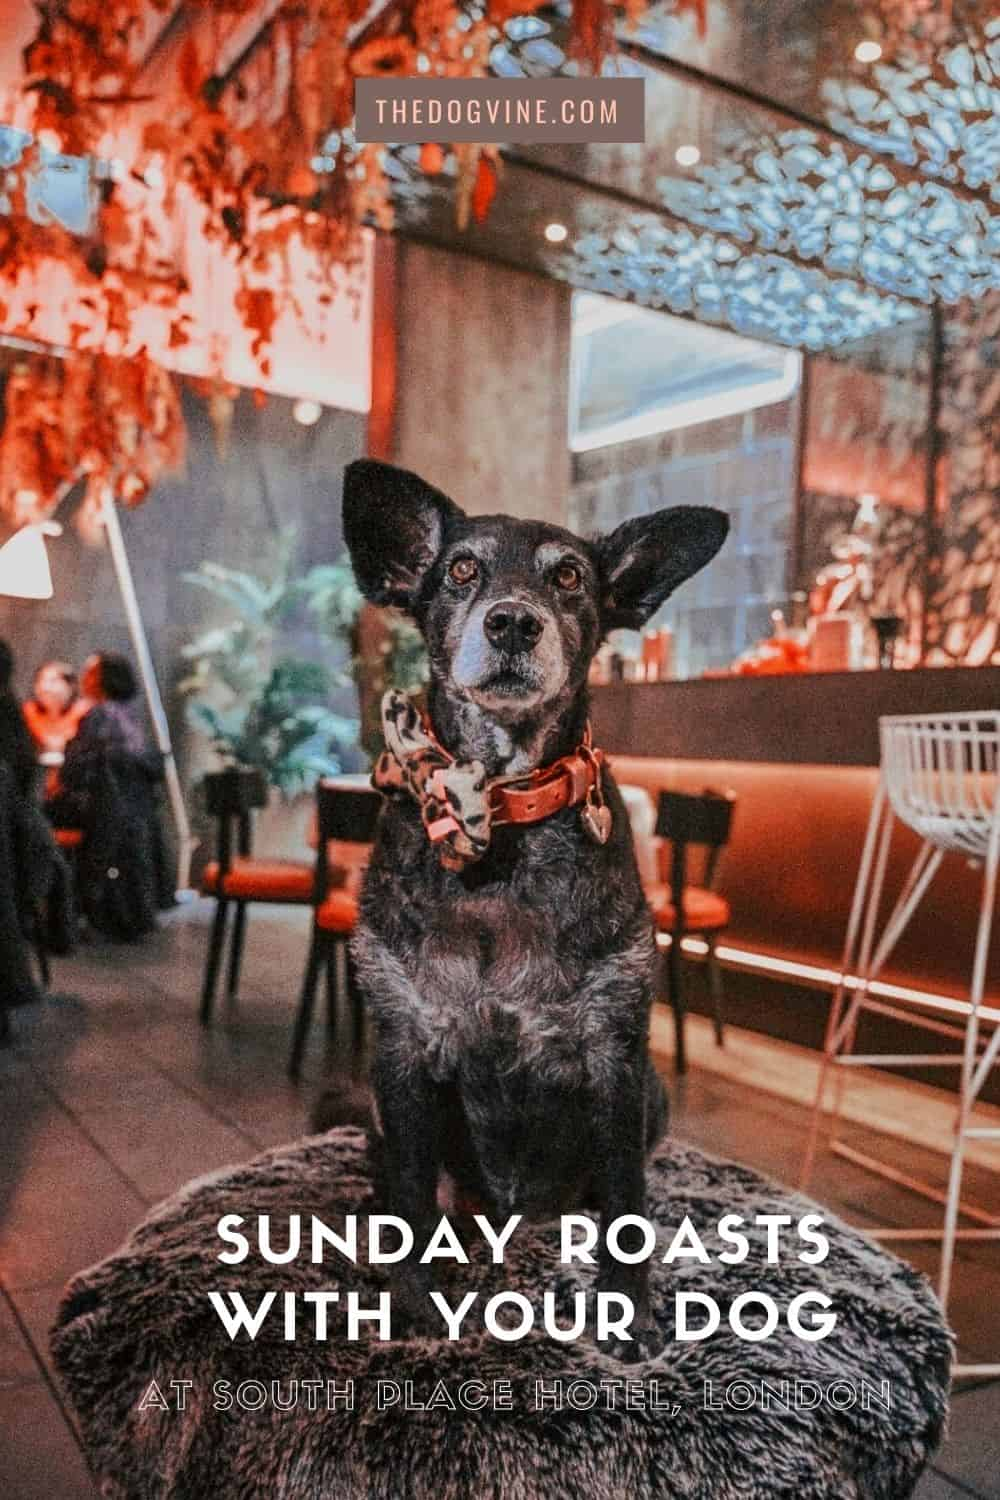 Sunday Roasts and Sunday Doggy Snacks at South Place Hotel London